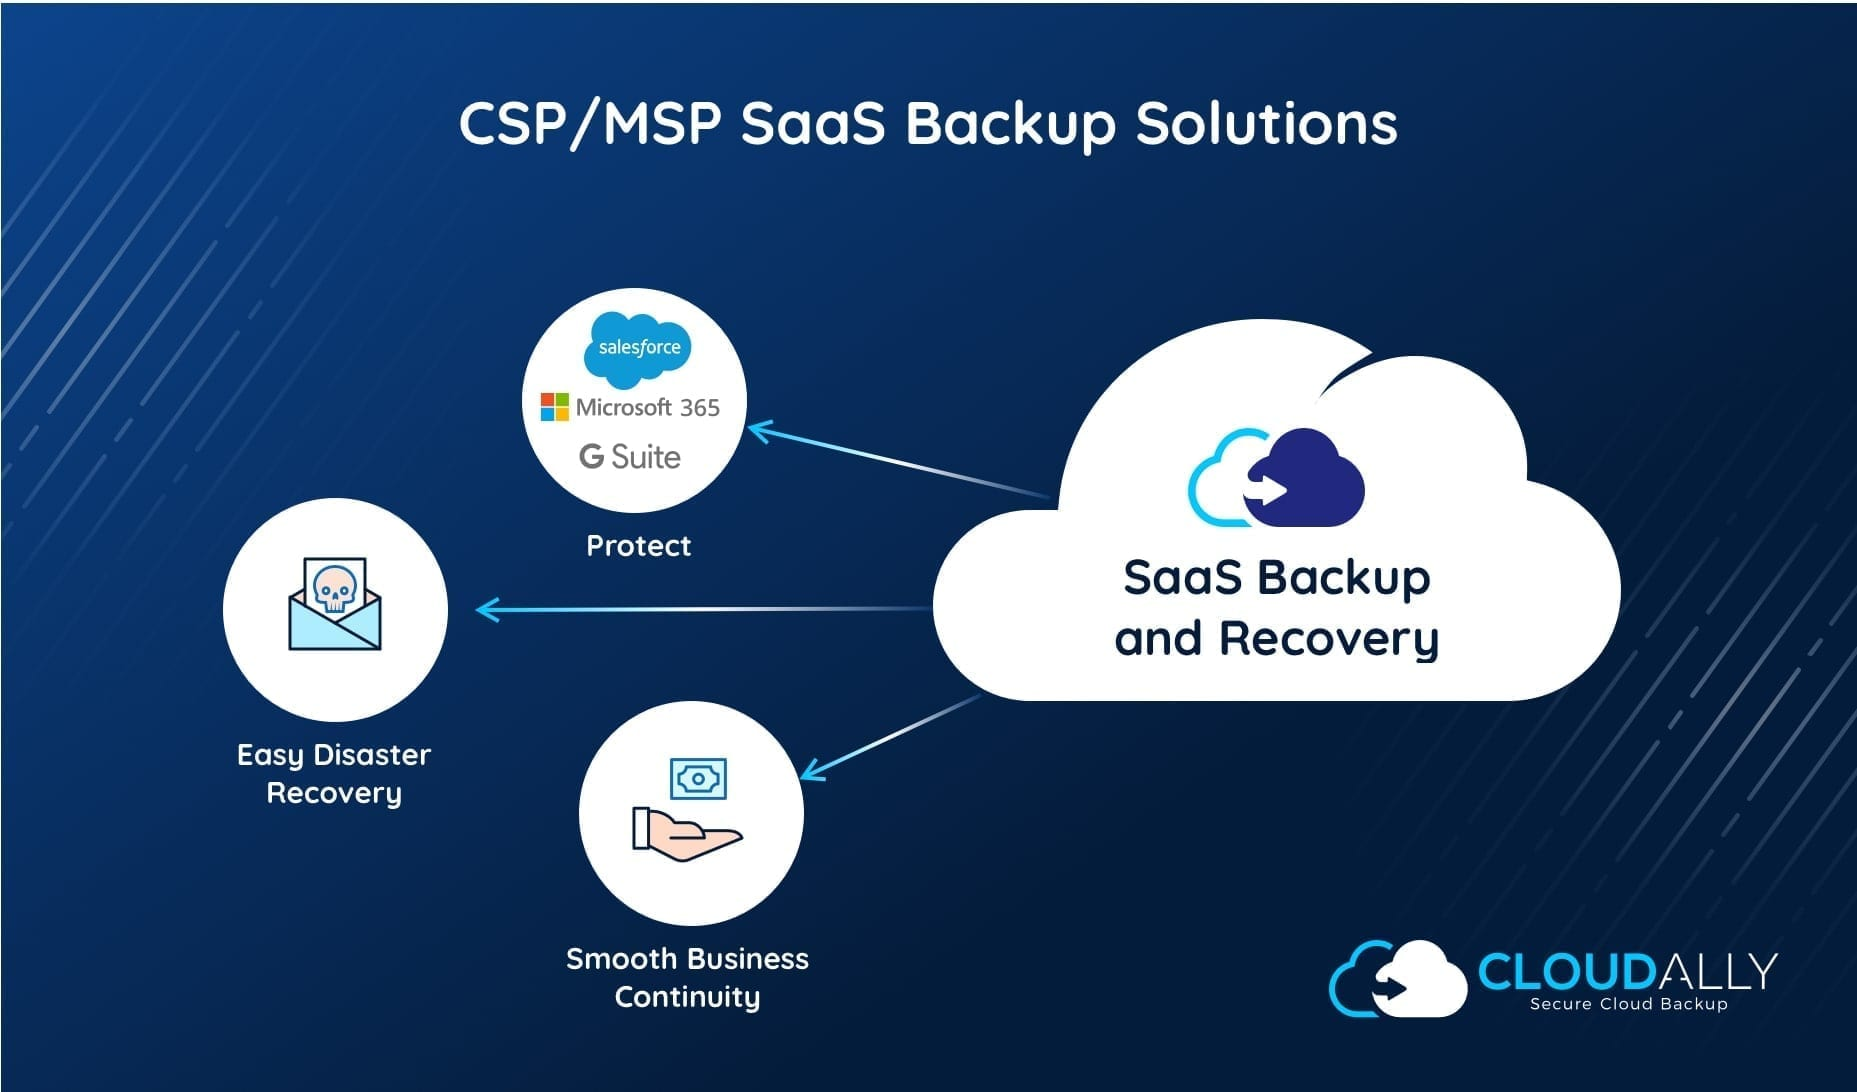 Minimize Your Customer's Data Loss Costs With MSP SaaS Backup Solutions